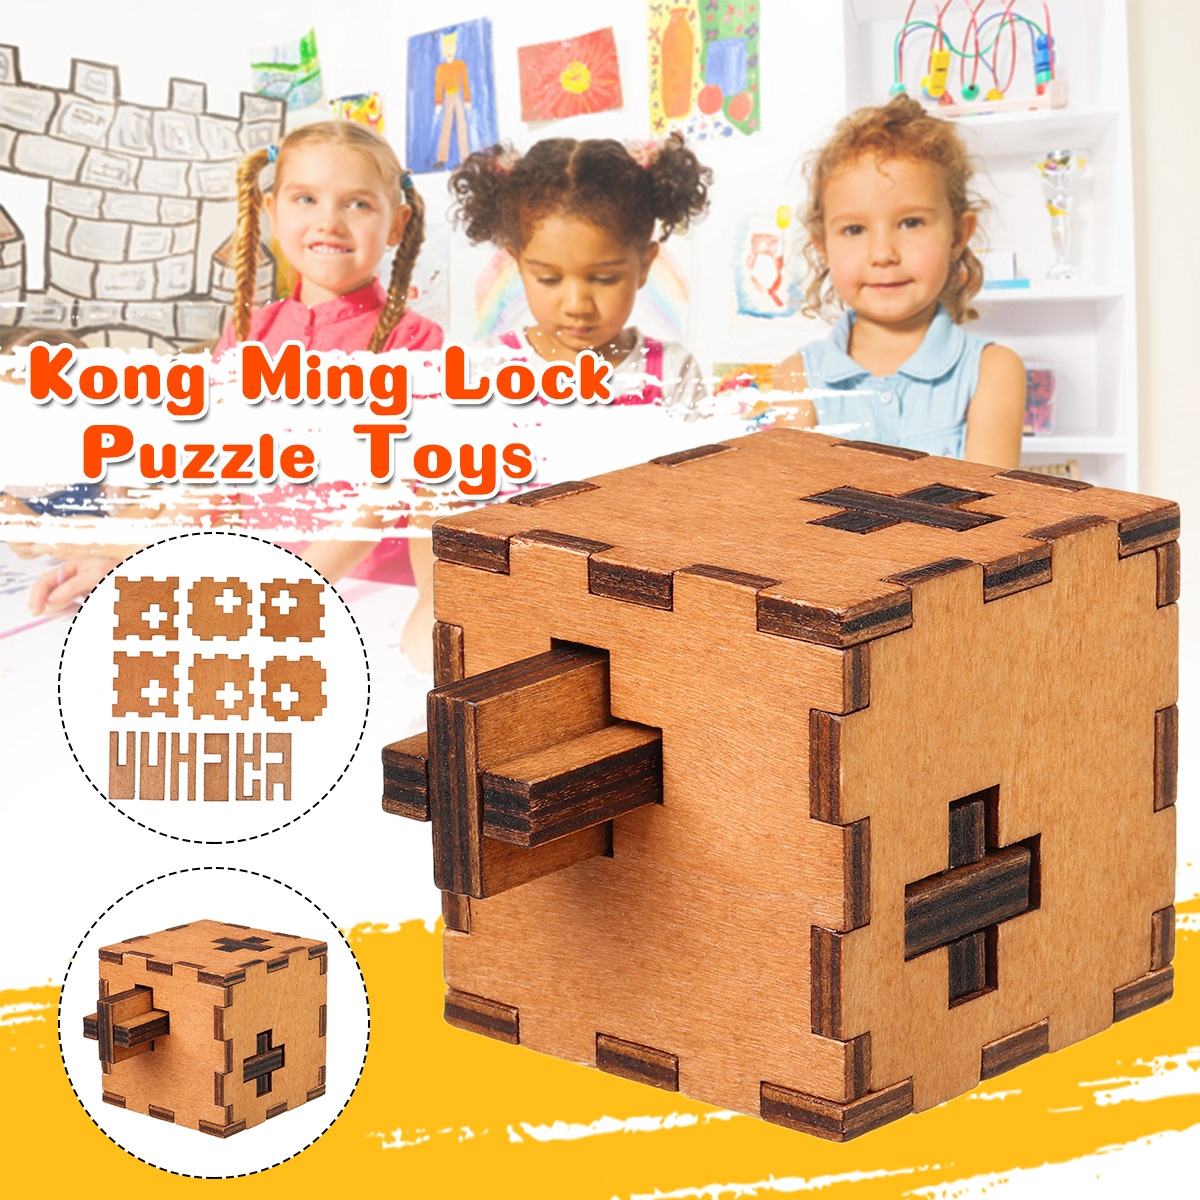 Level 10 Secret Puzzle Box Toy Brain Teaser IQ Test Kong Ming Lock Puzzle Learning Toys for Kids Gift